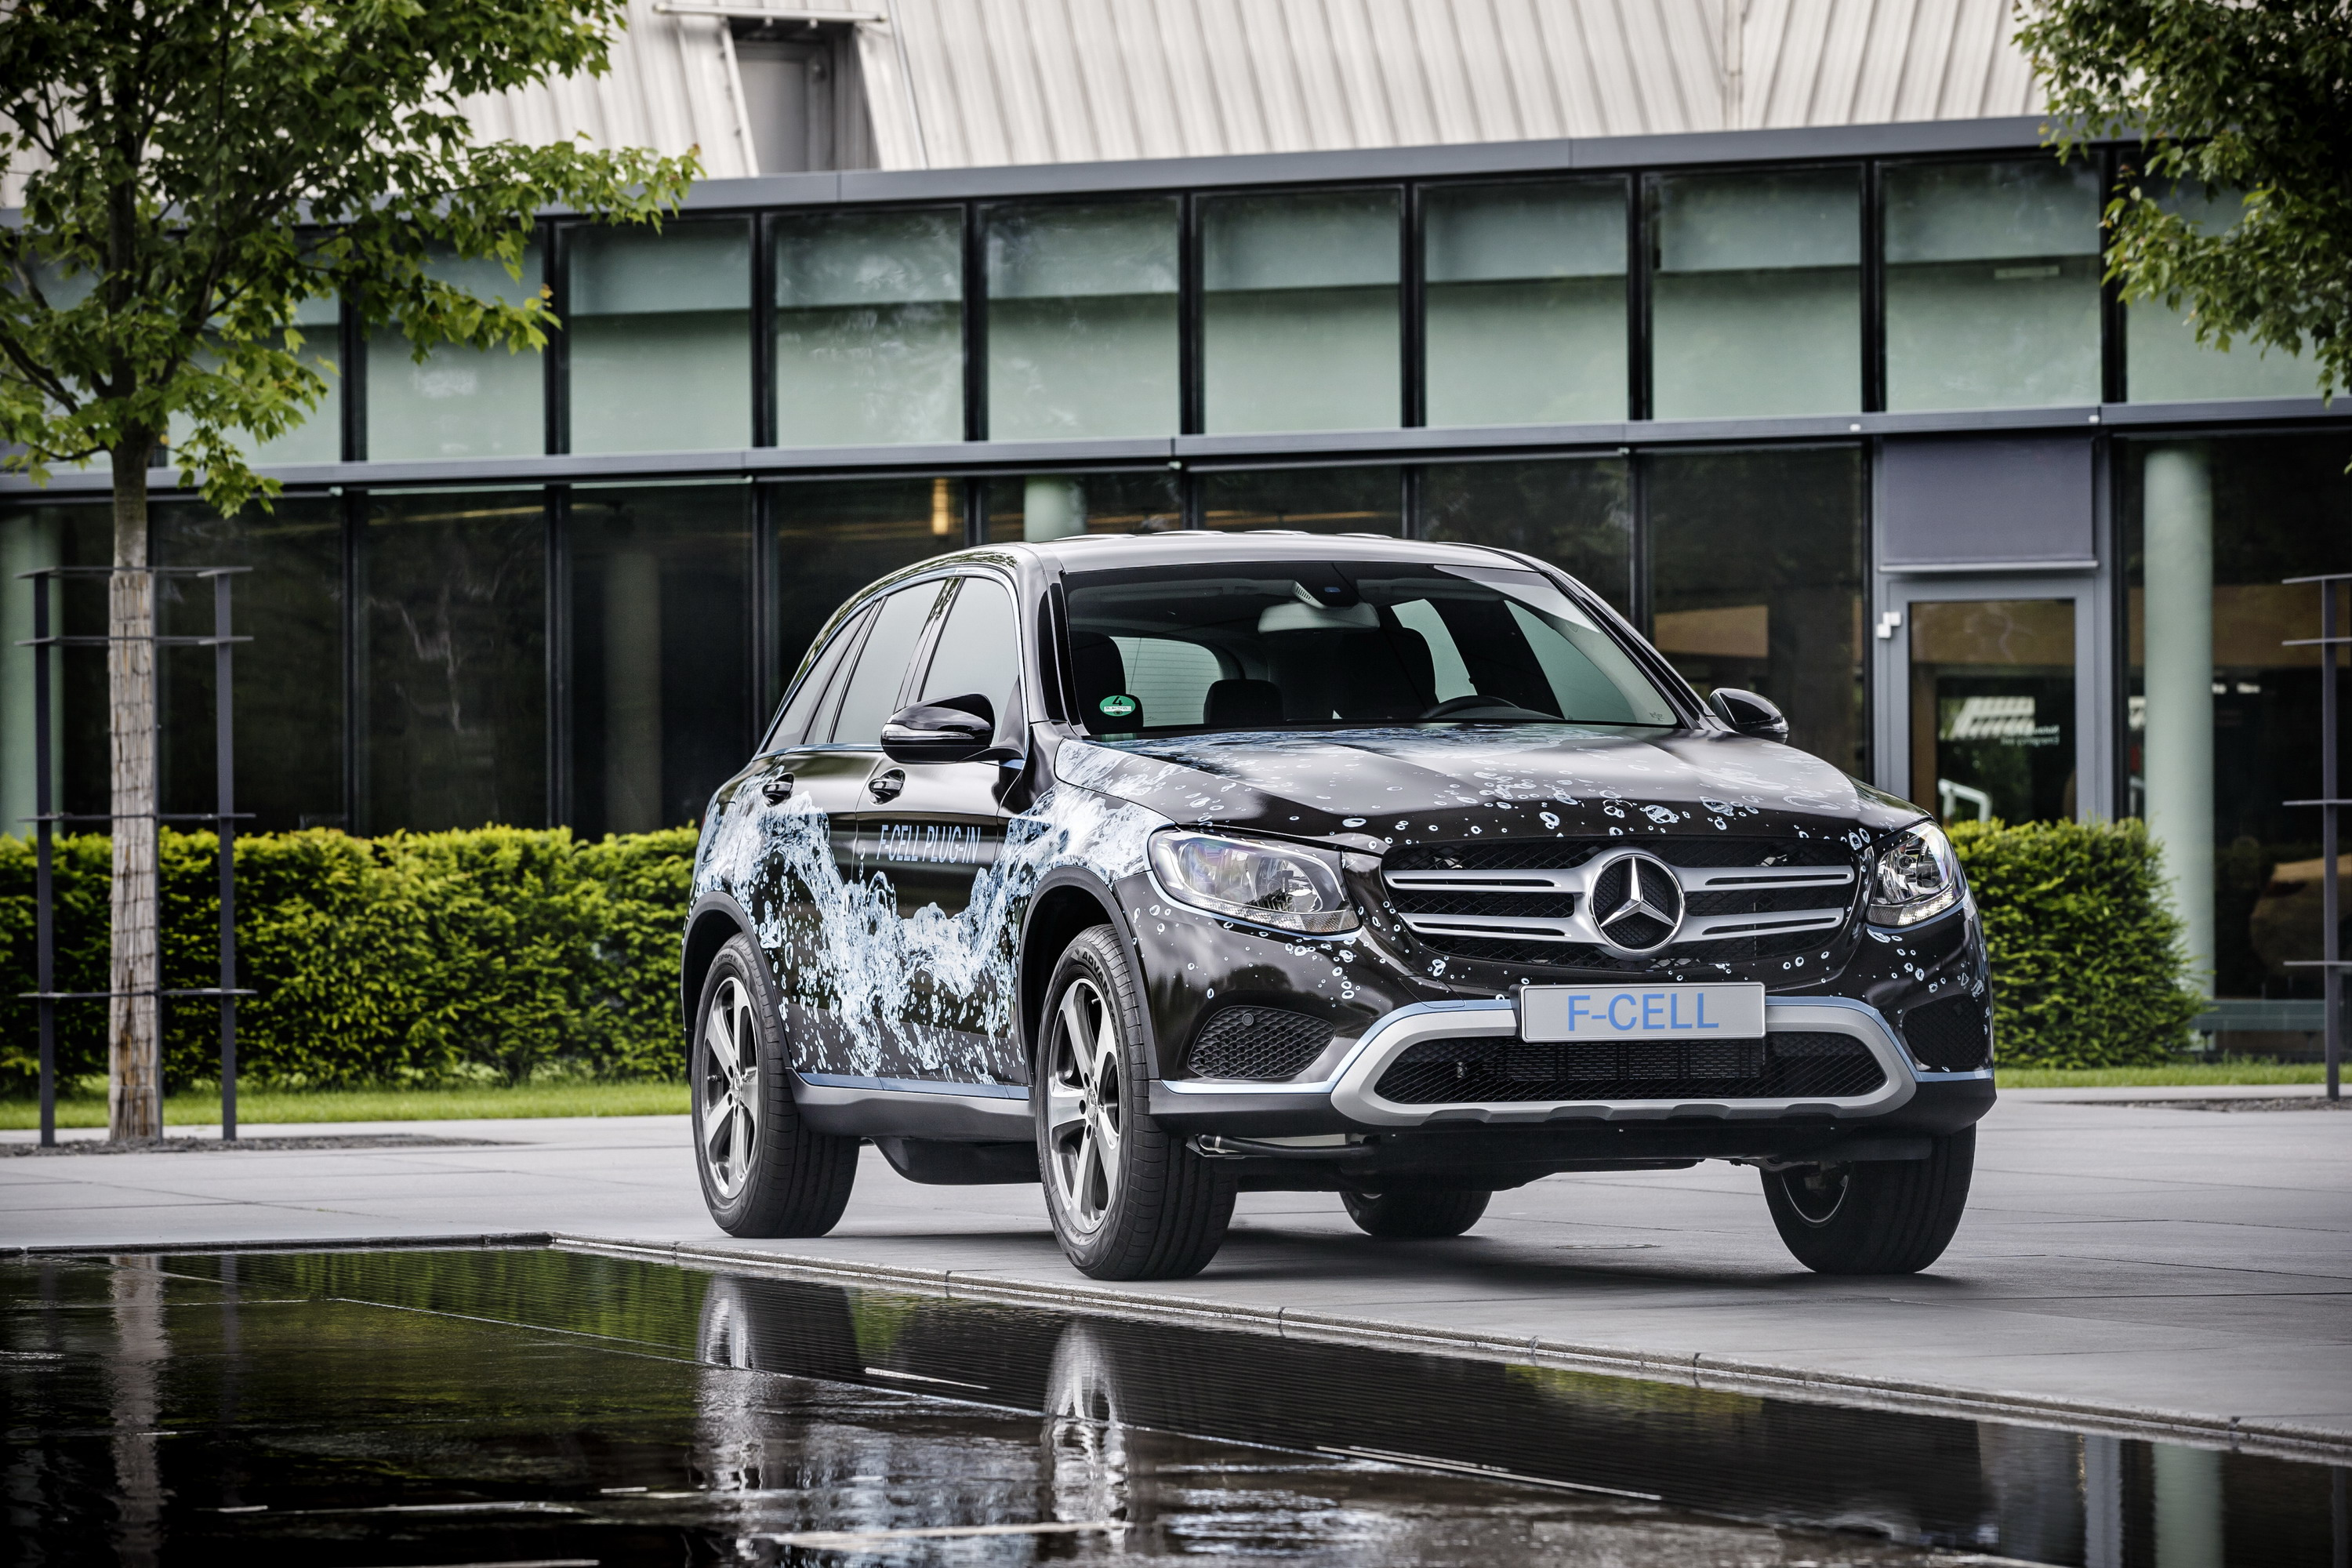 2018 Mercedes-Benz GLC F-Cell Review - Top Speed